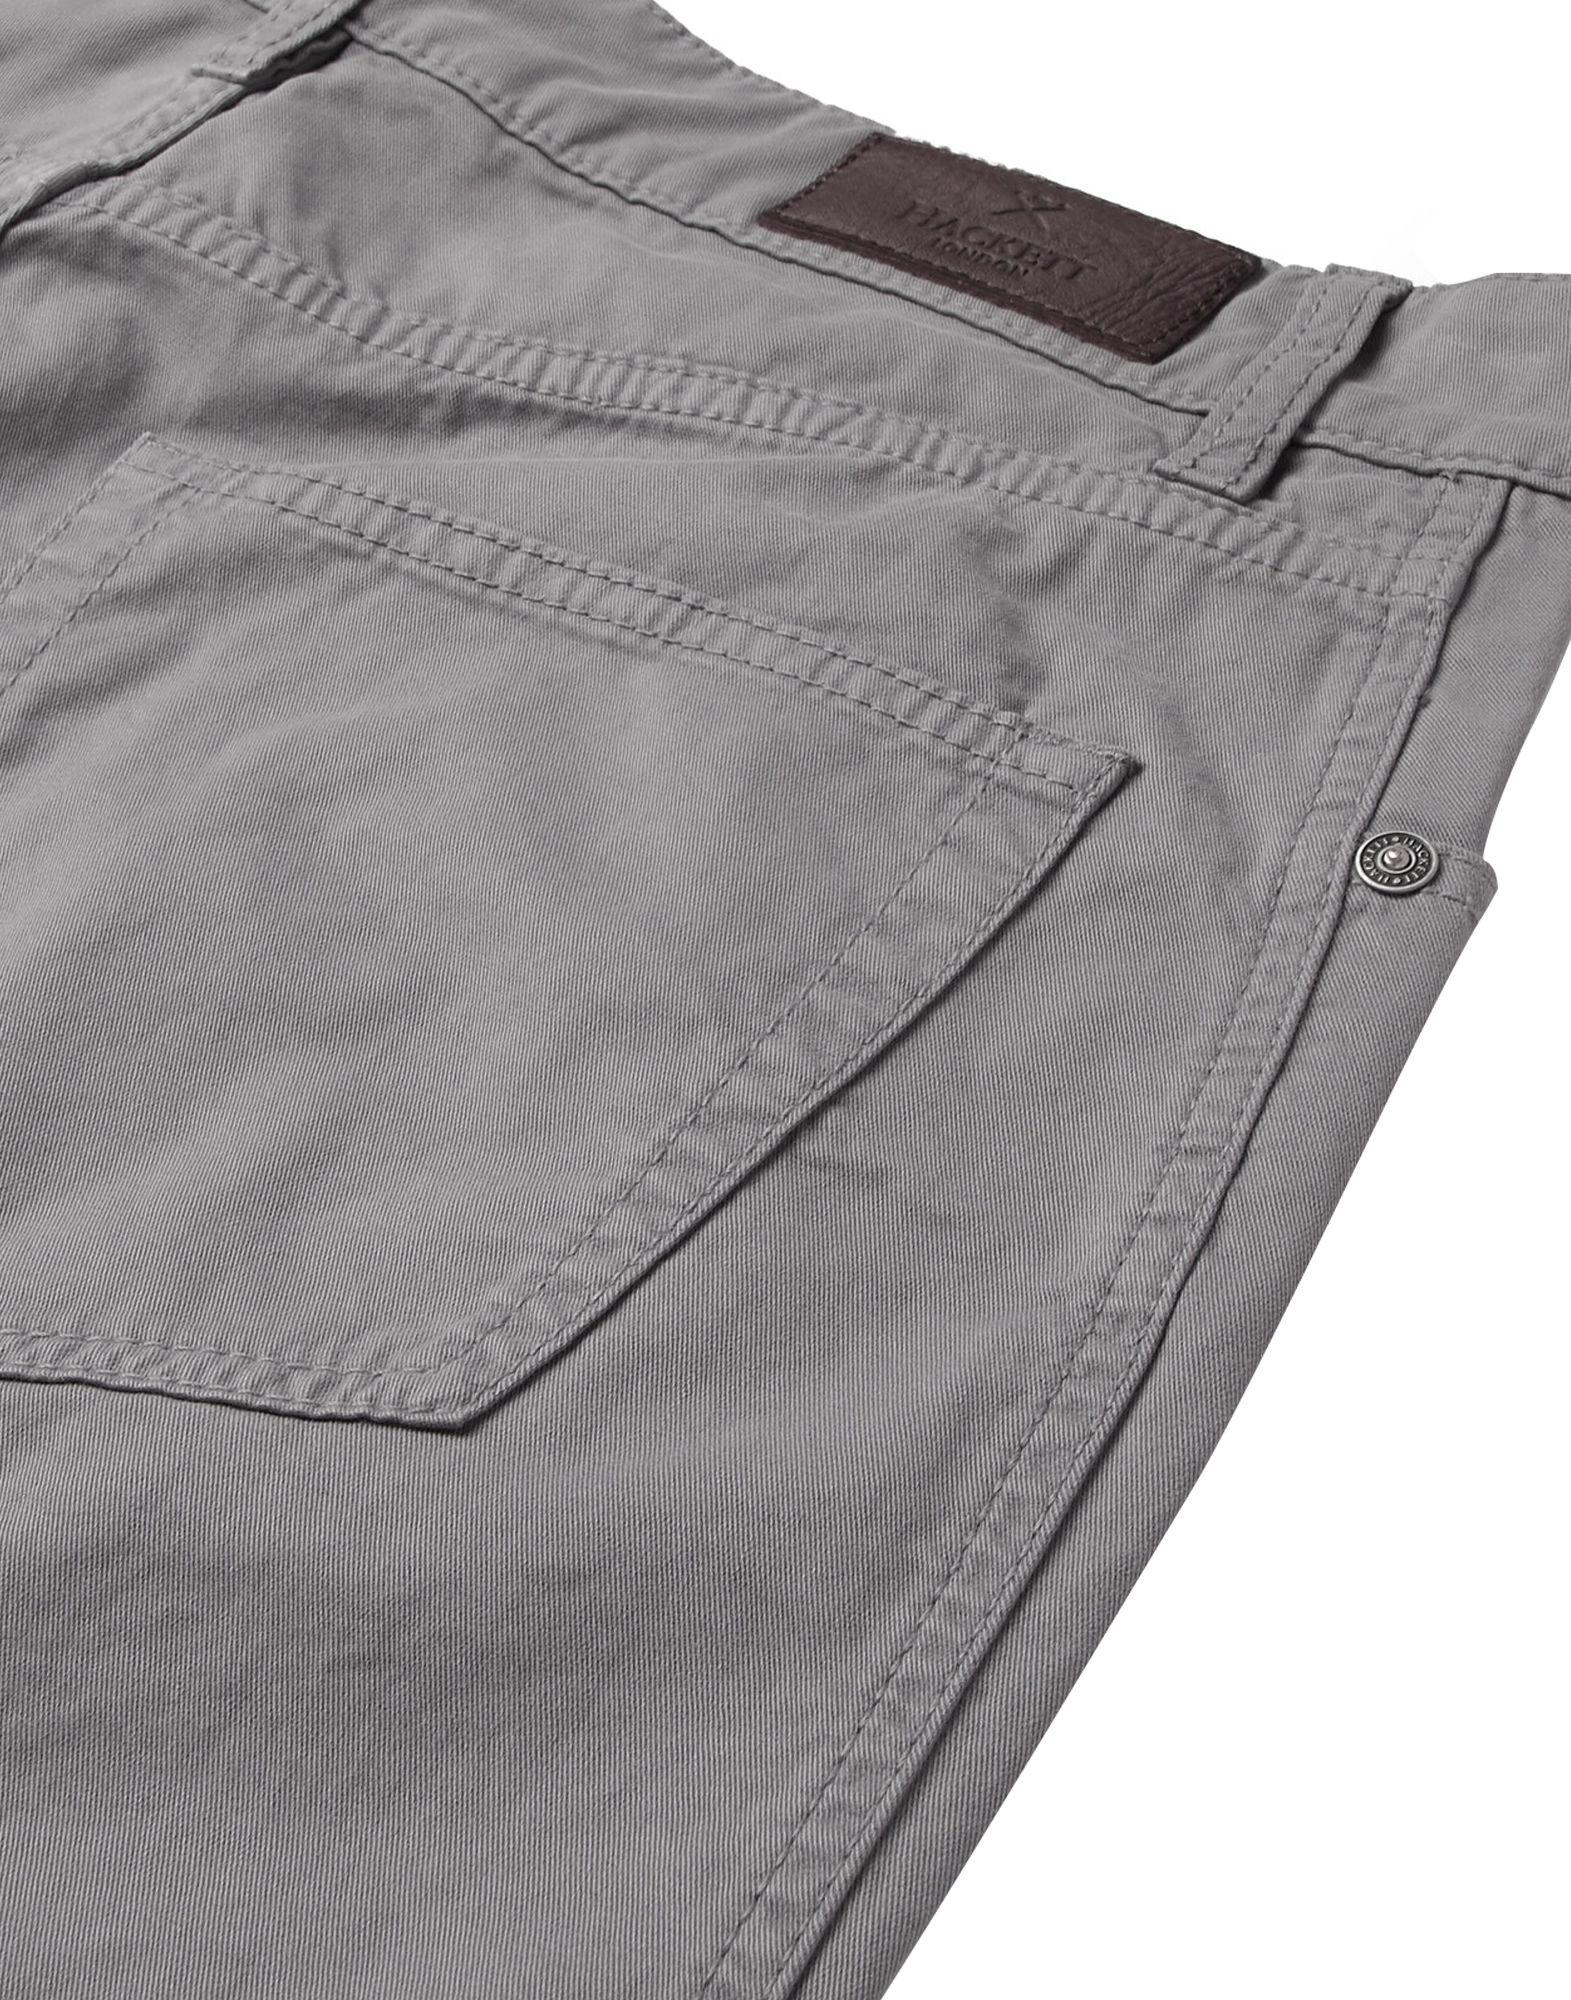 Hackett Leather Casual Pants in Lead (Grey) for Men